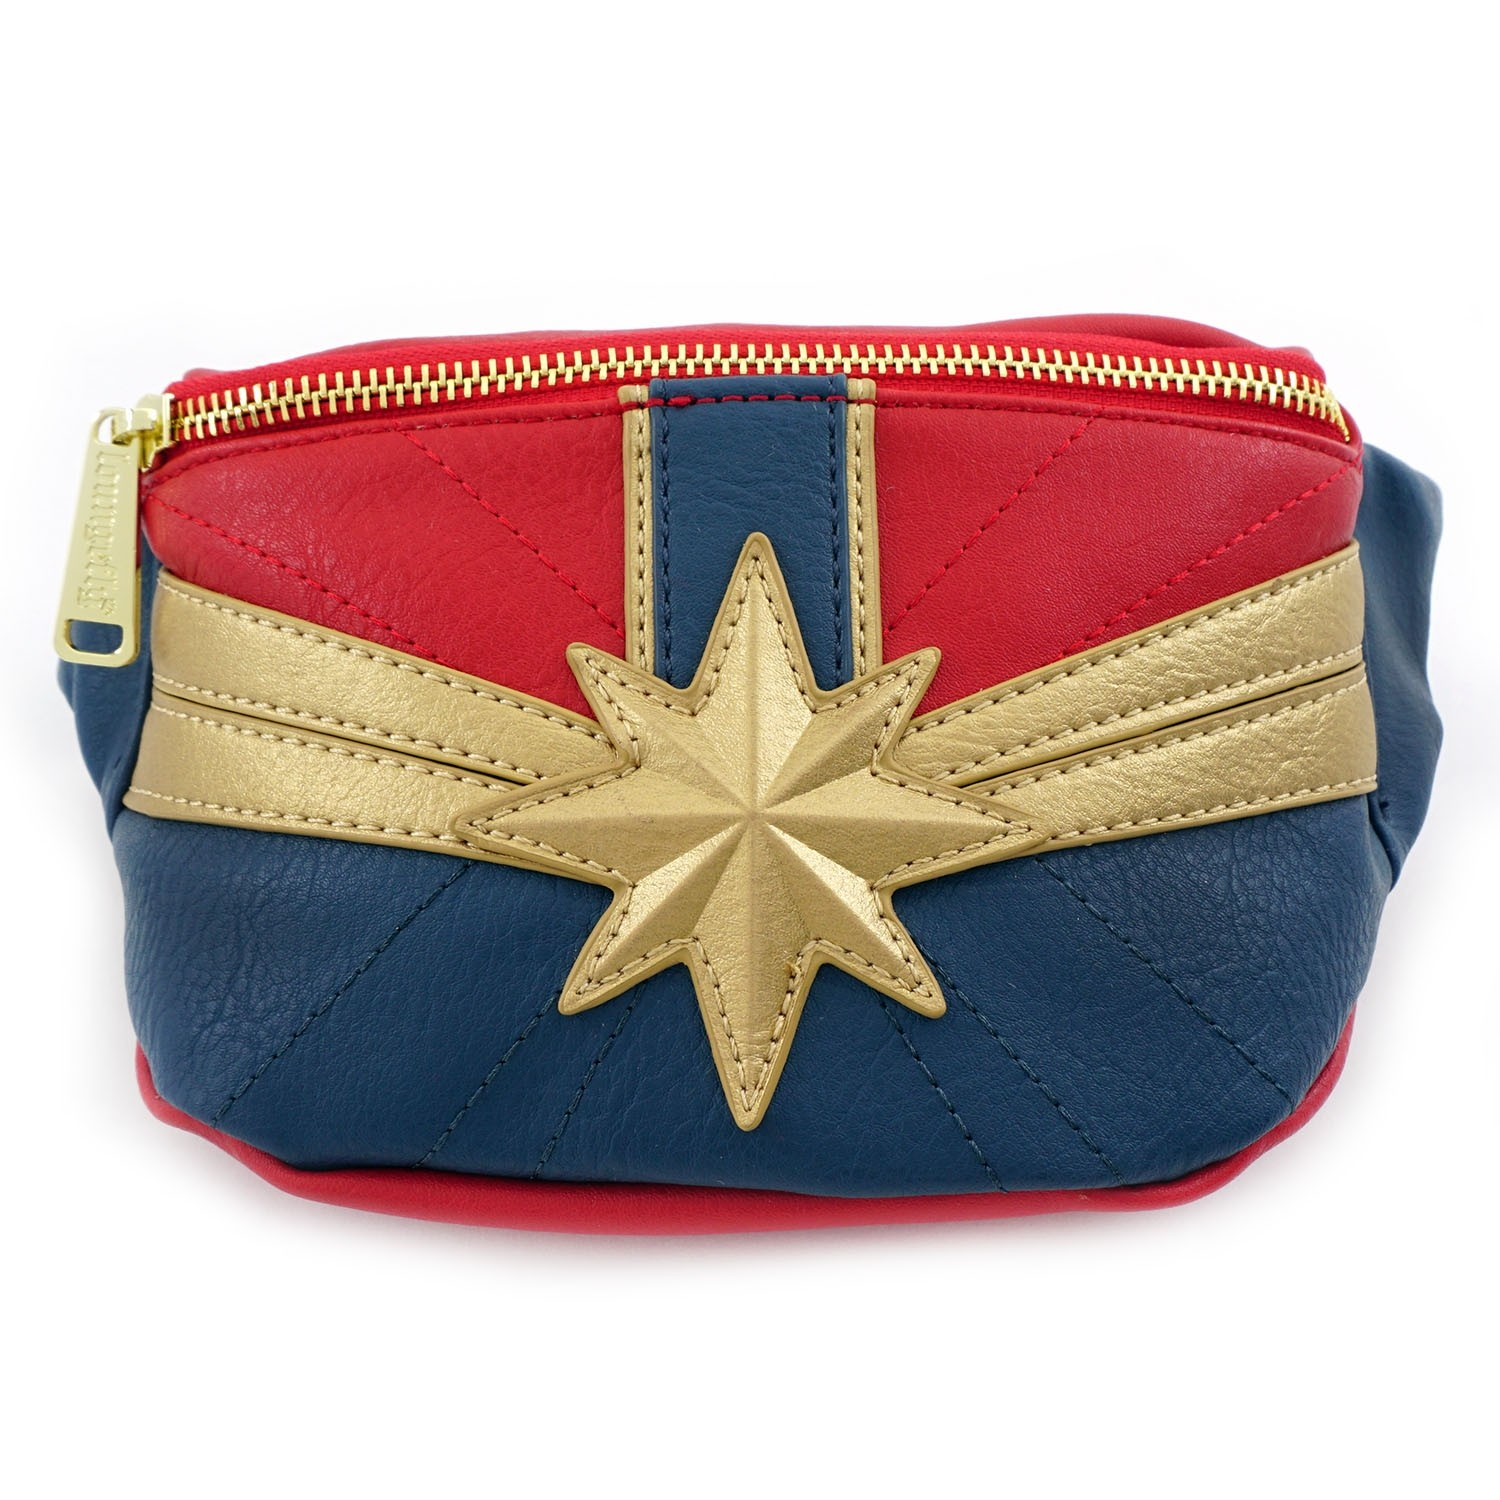 cc15411b72d7 Details about Loungefly X Marvel Comics Captain Marvel Fanny Pack Waist Bag  Purse Suit-Up